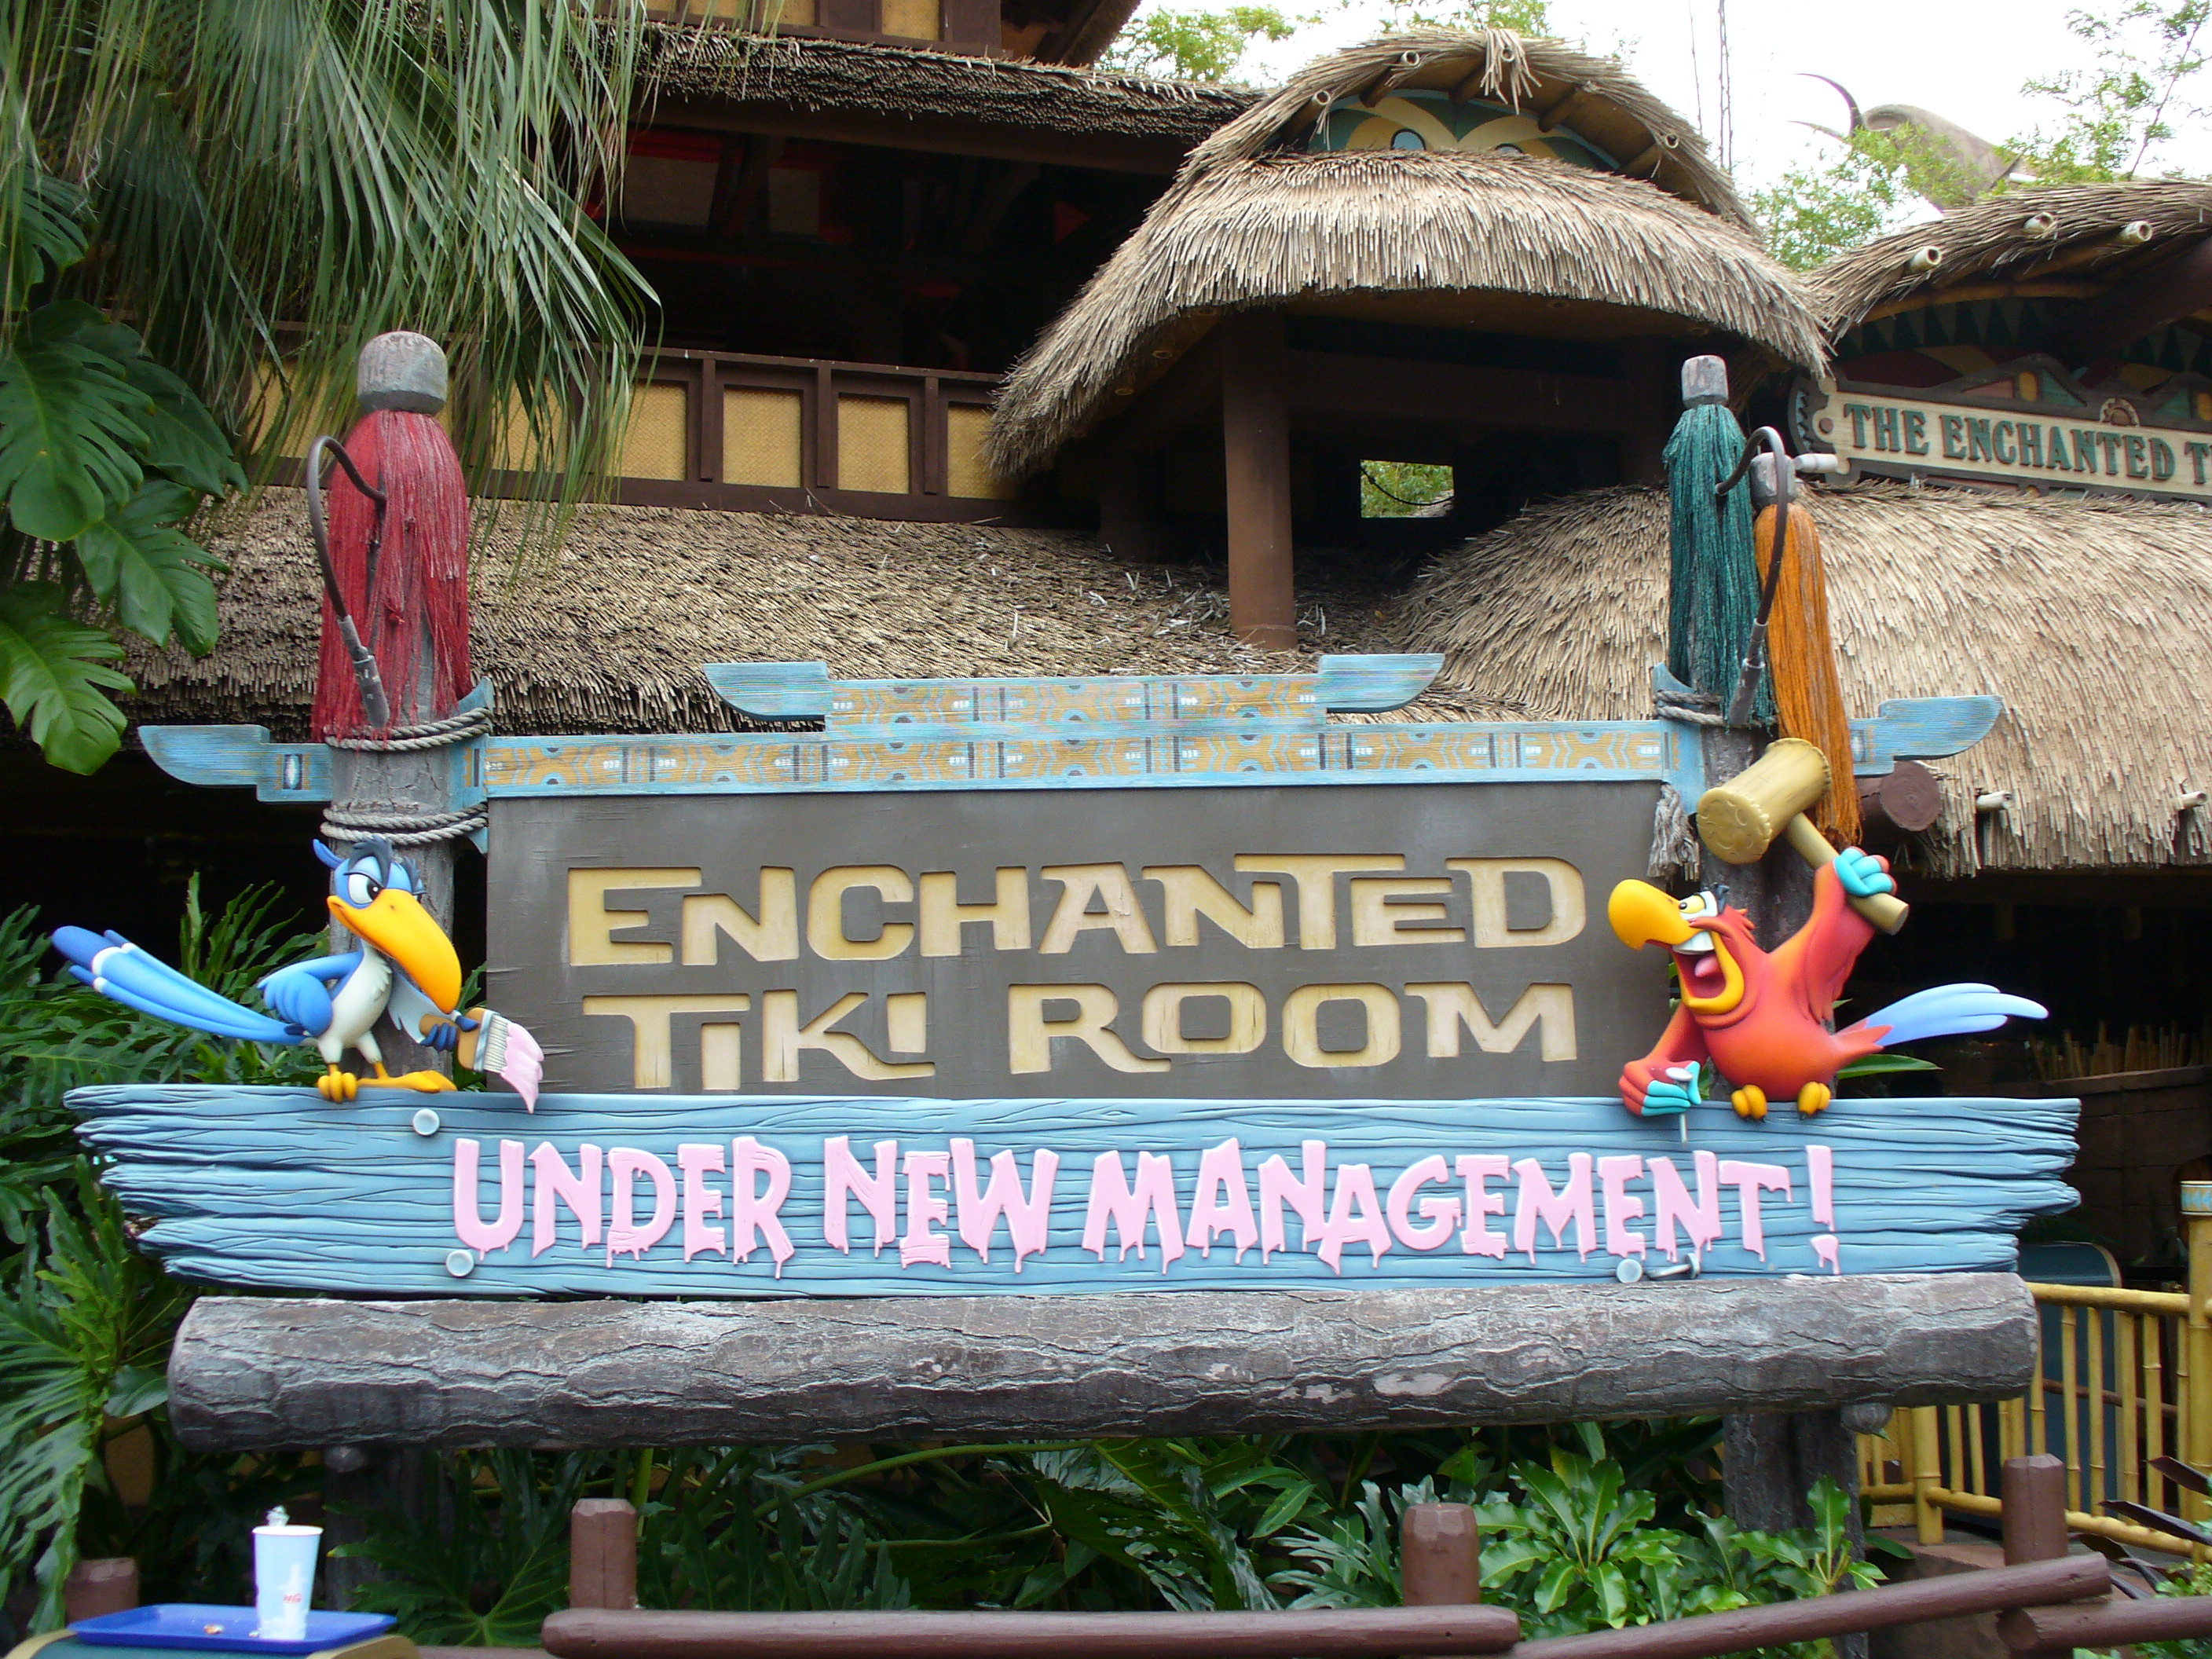 File:The Enchanted Tiki Room (Under New Management) at Magic Kingdom.jpg